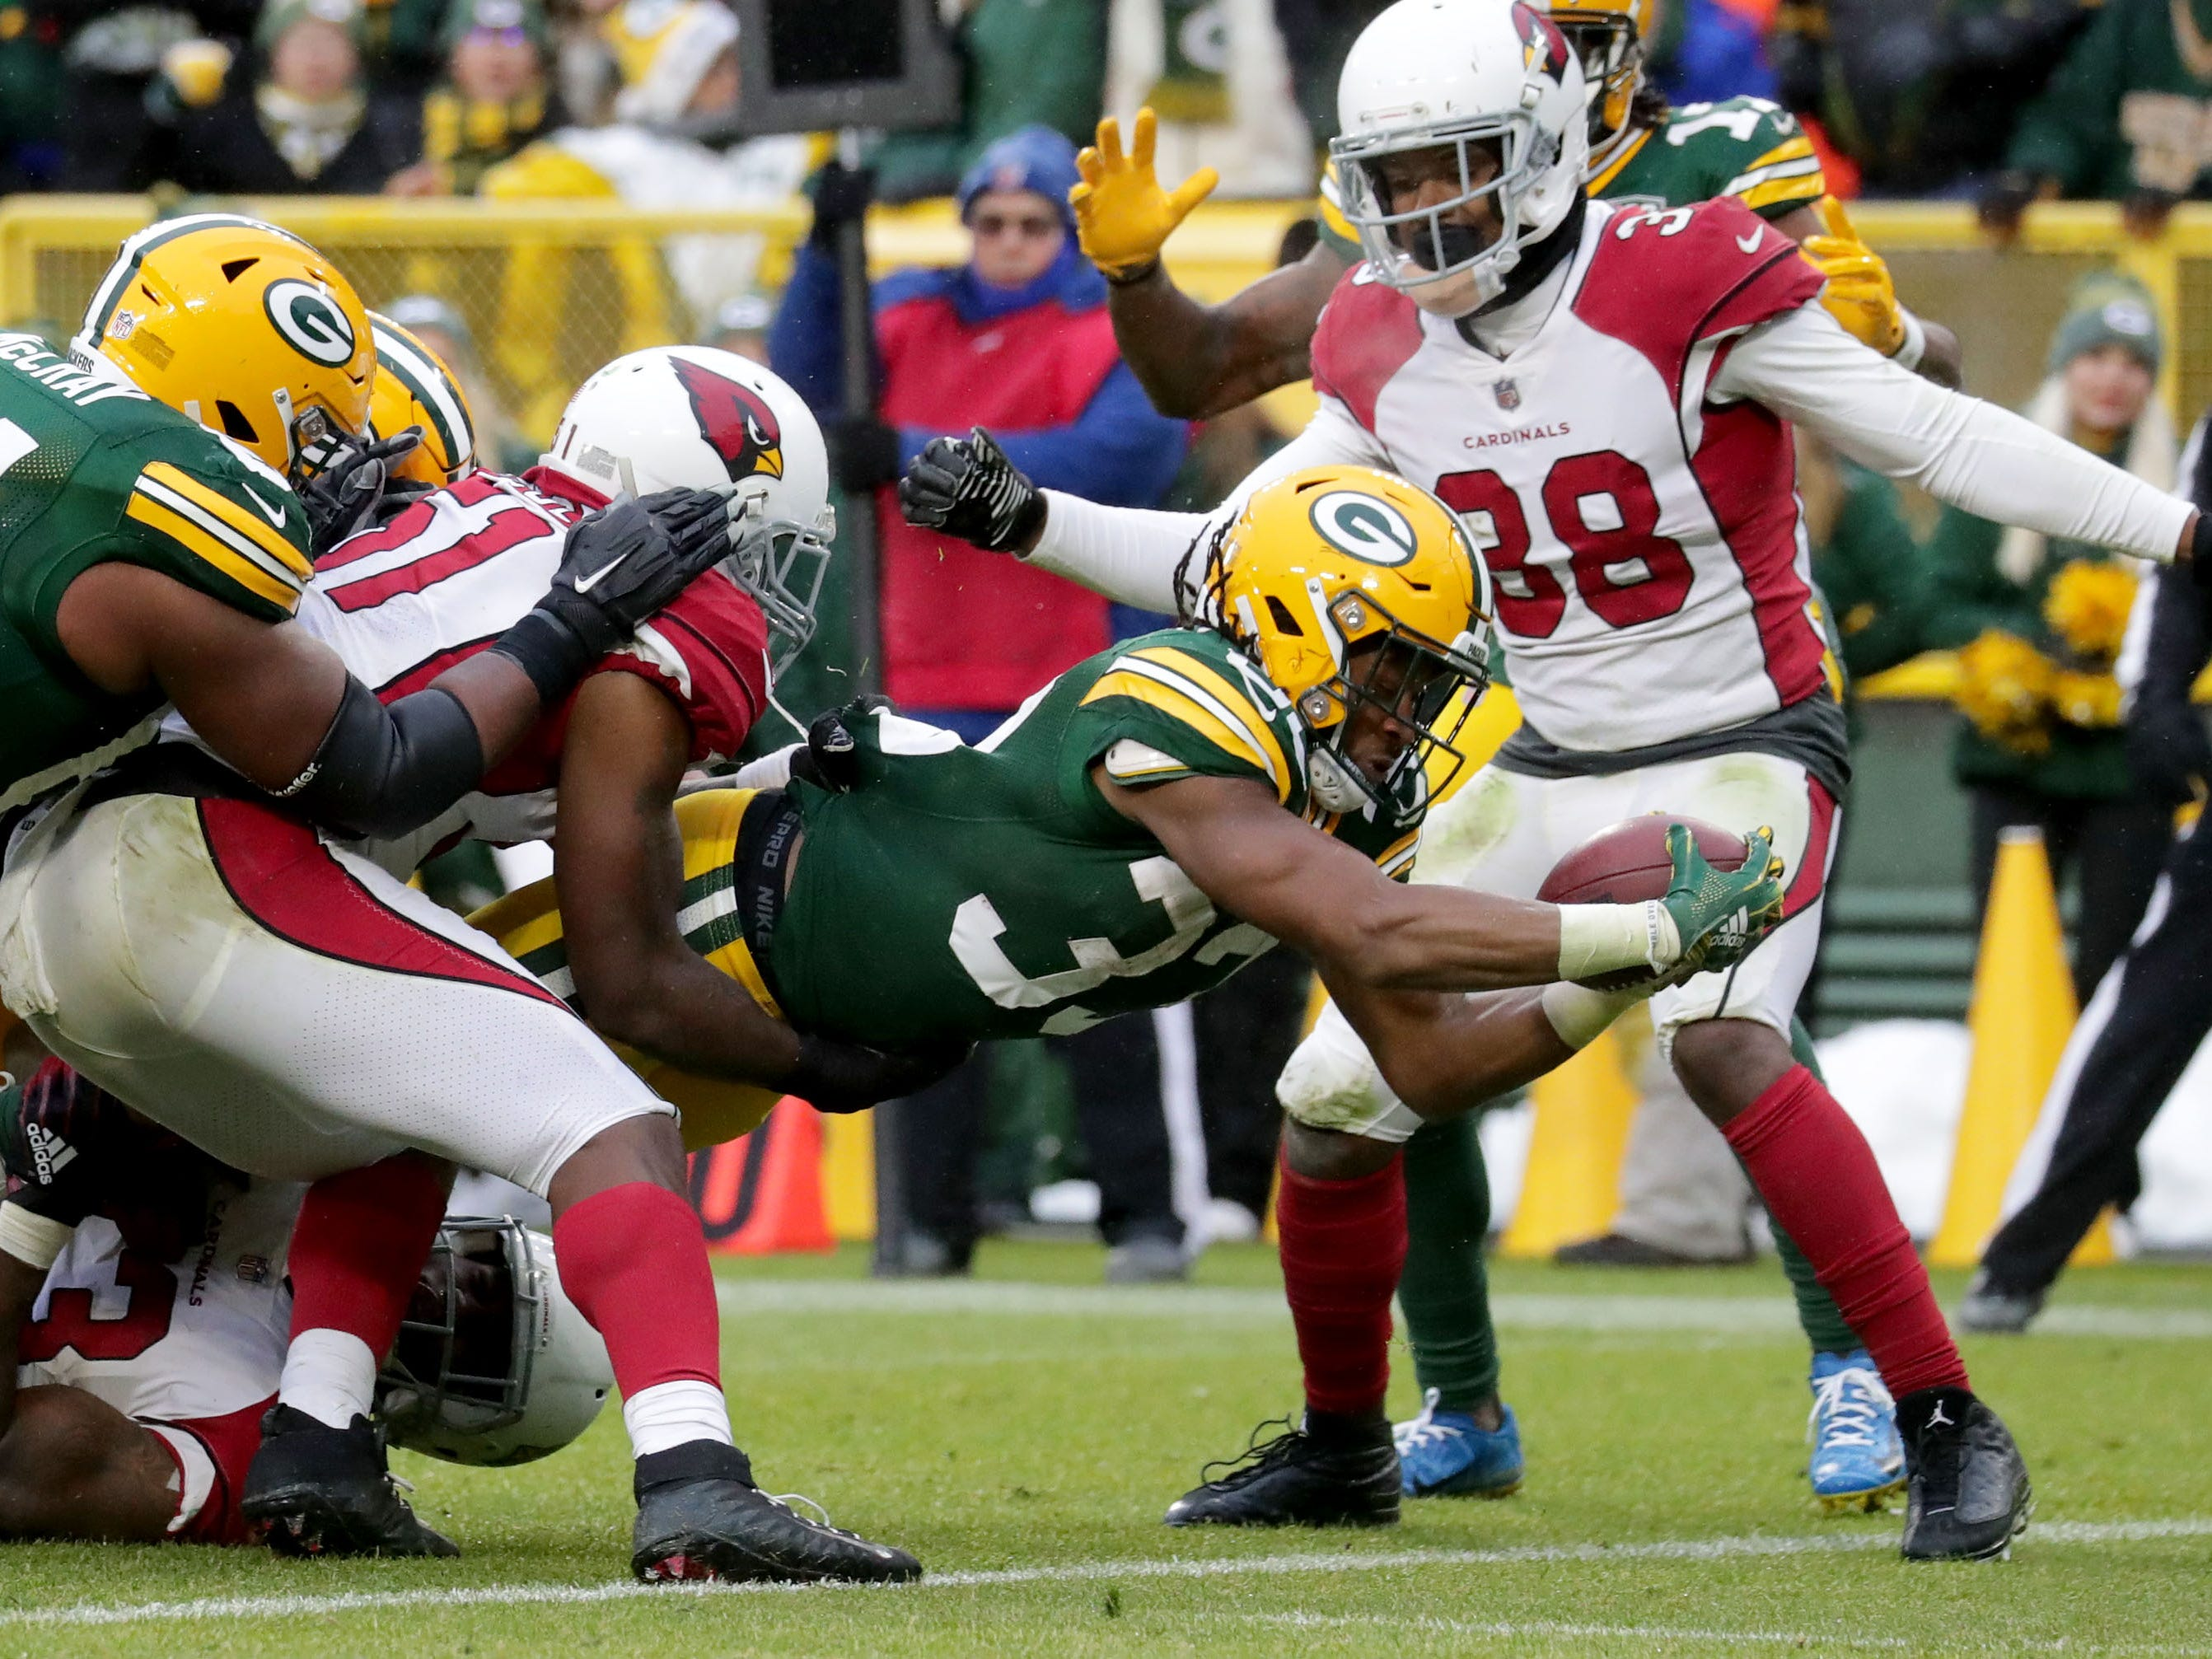 Green Bay Packers running back Aaron Jones (33) scores a touchdown during the 4th quarter of Green Bay Packers game 20-17 loss against the Arizona Cardinals on Sunday, December 2, 2018 at Lambeau Field in Green Bay, Wis. Mike De Sisti / USA TODAY NETWORK-Wis